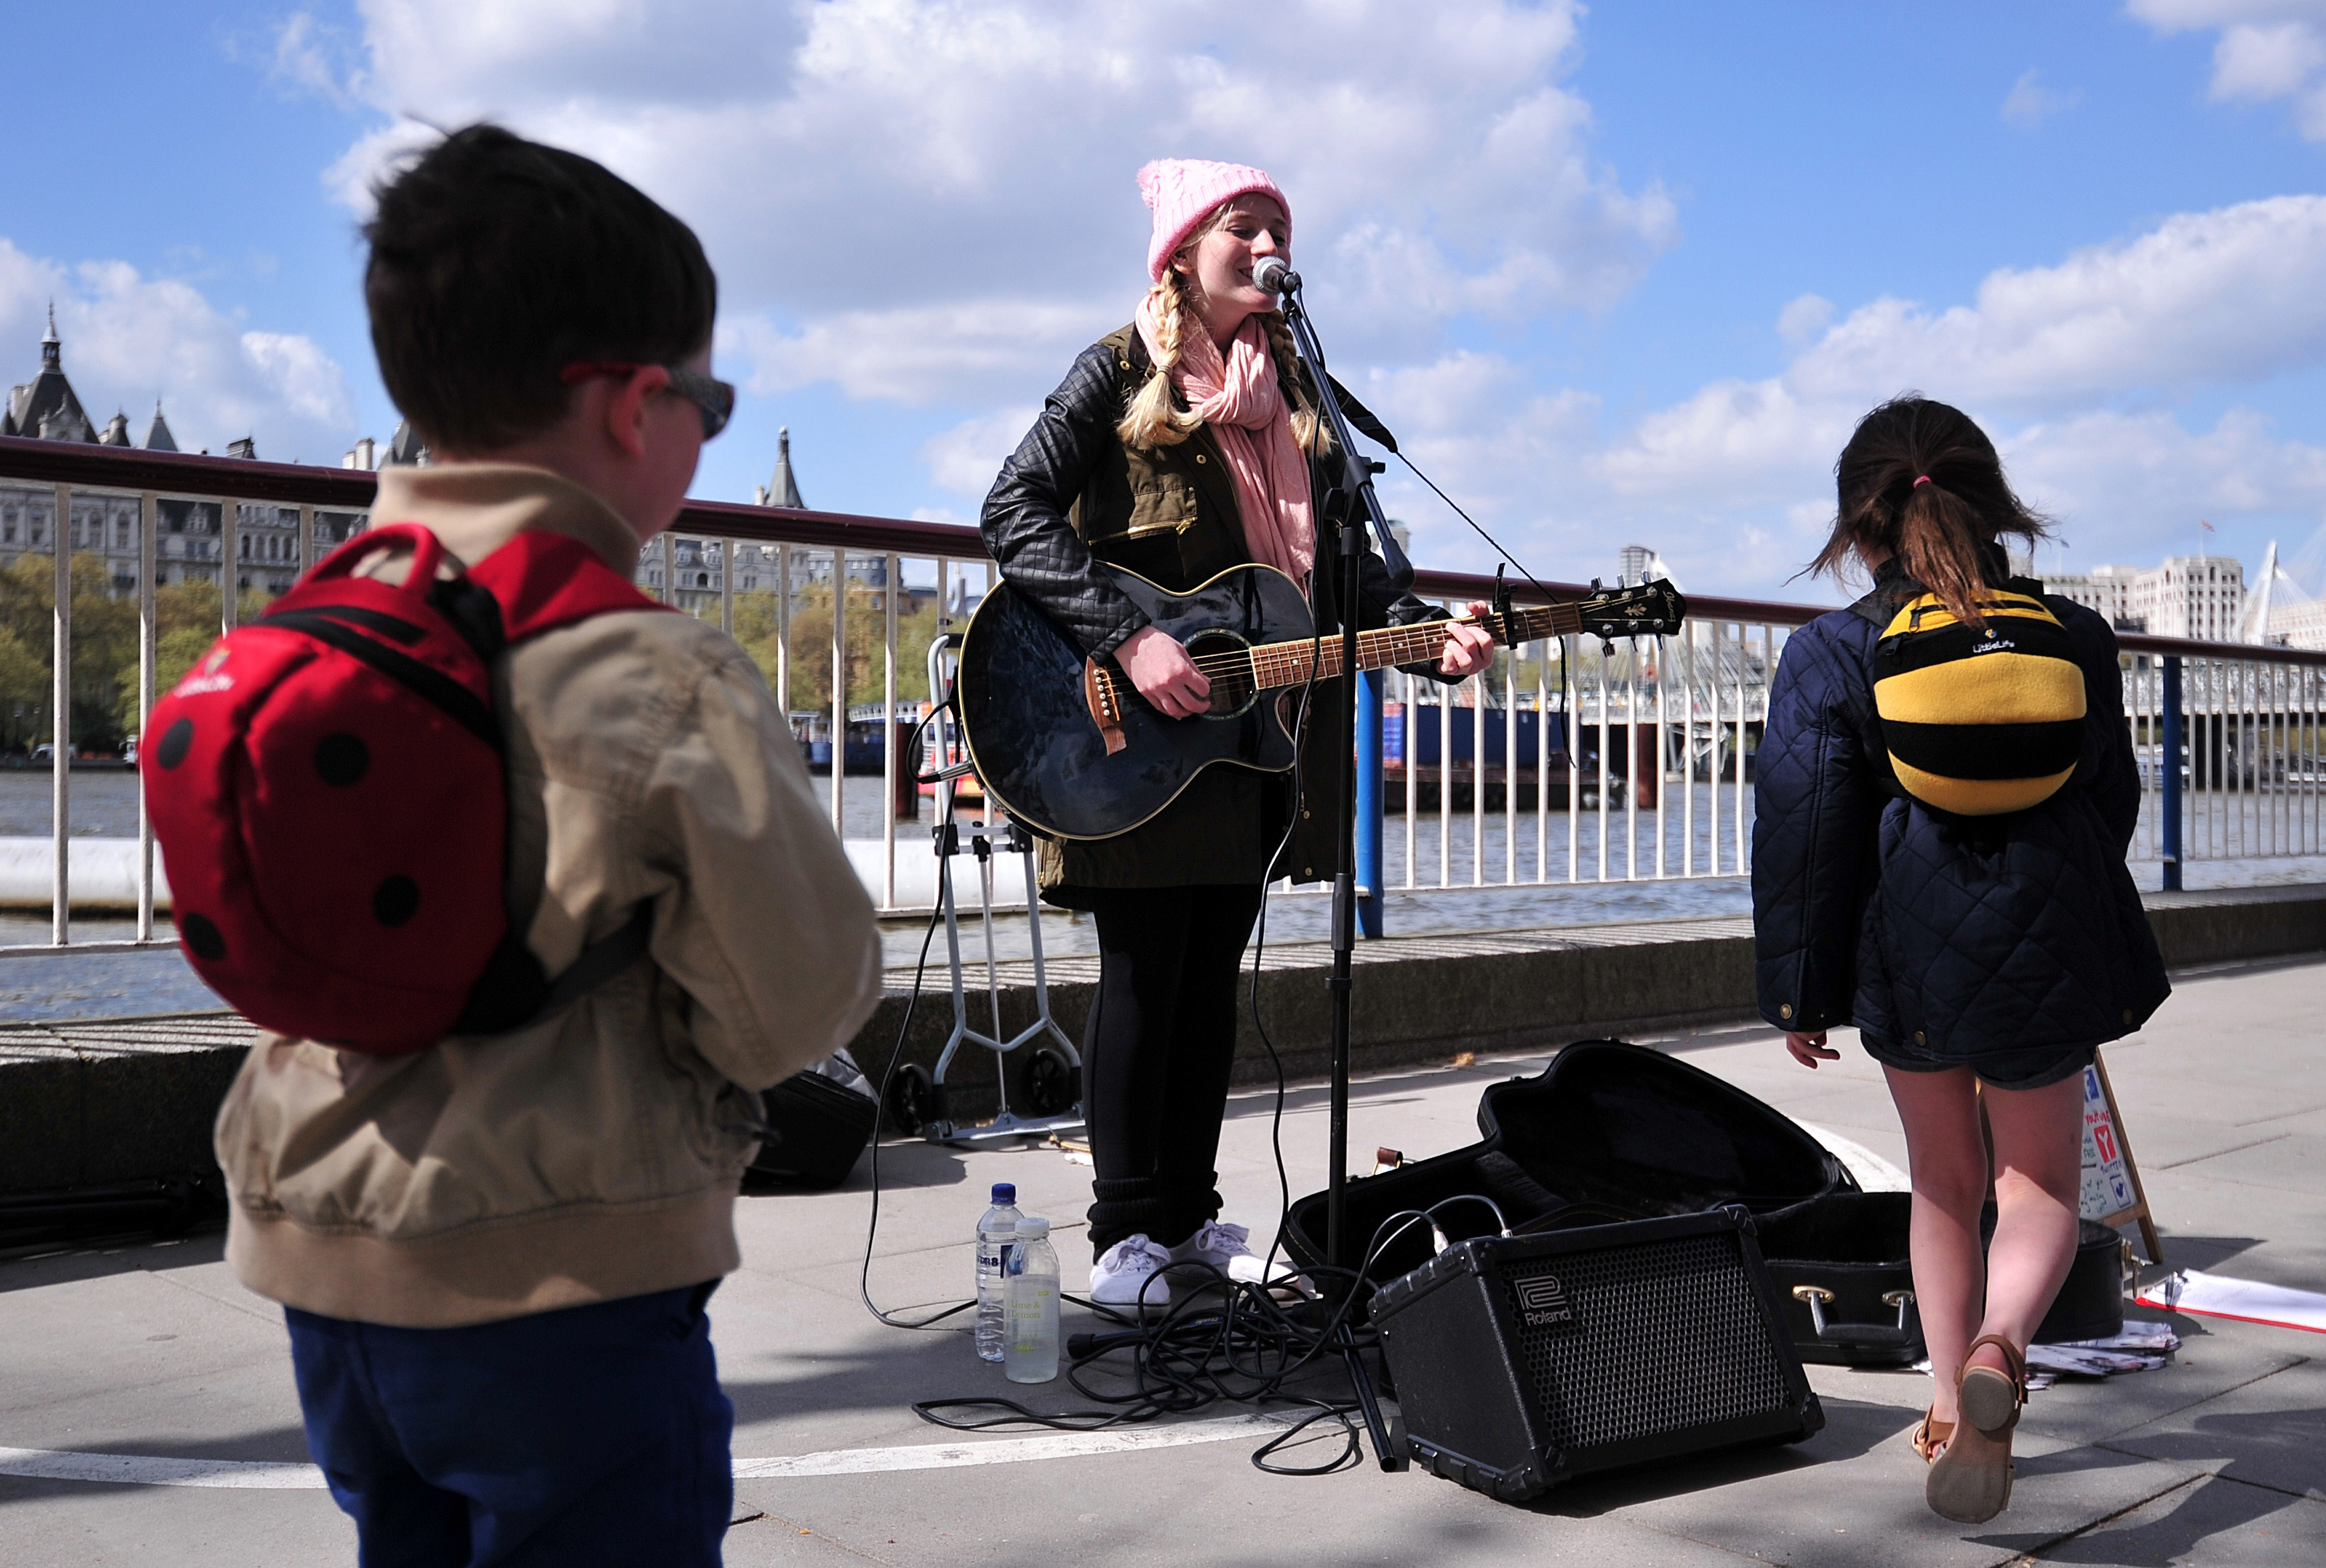 Guitarist plays for children on street in London